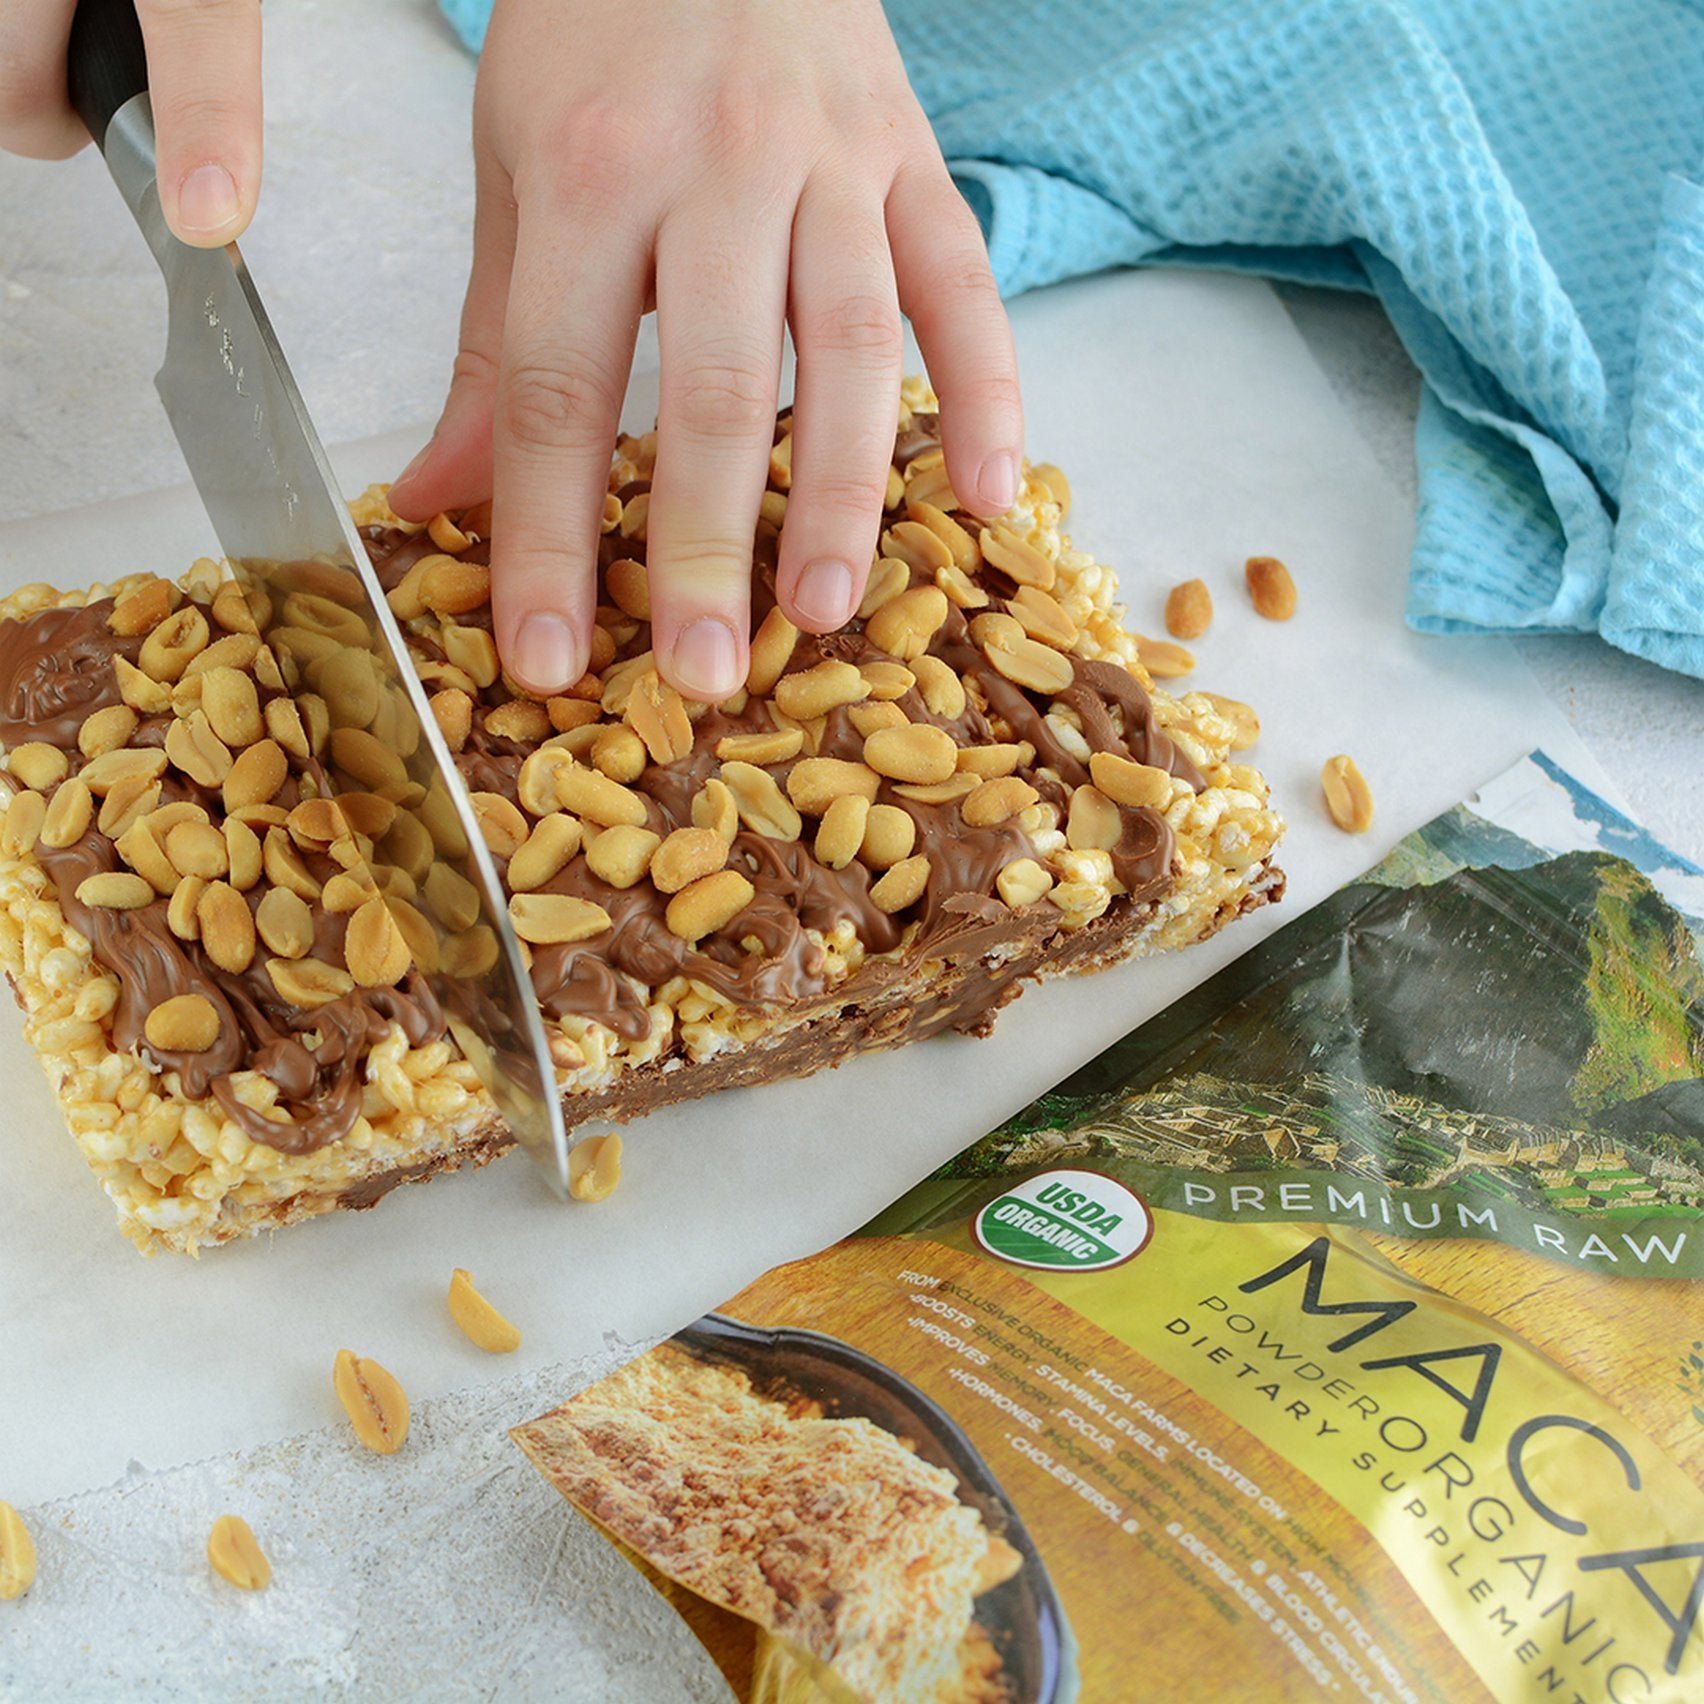 cutting Puffed Rice Bars with Peanut Butter